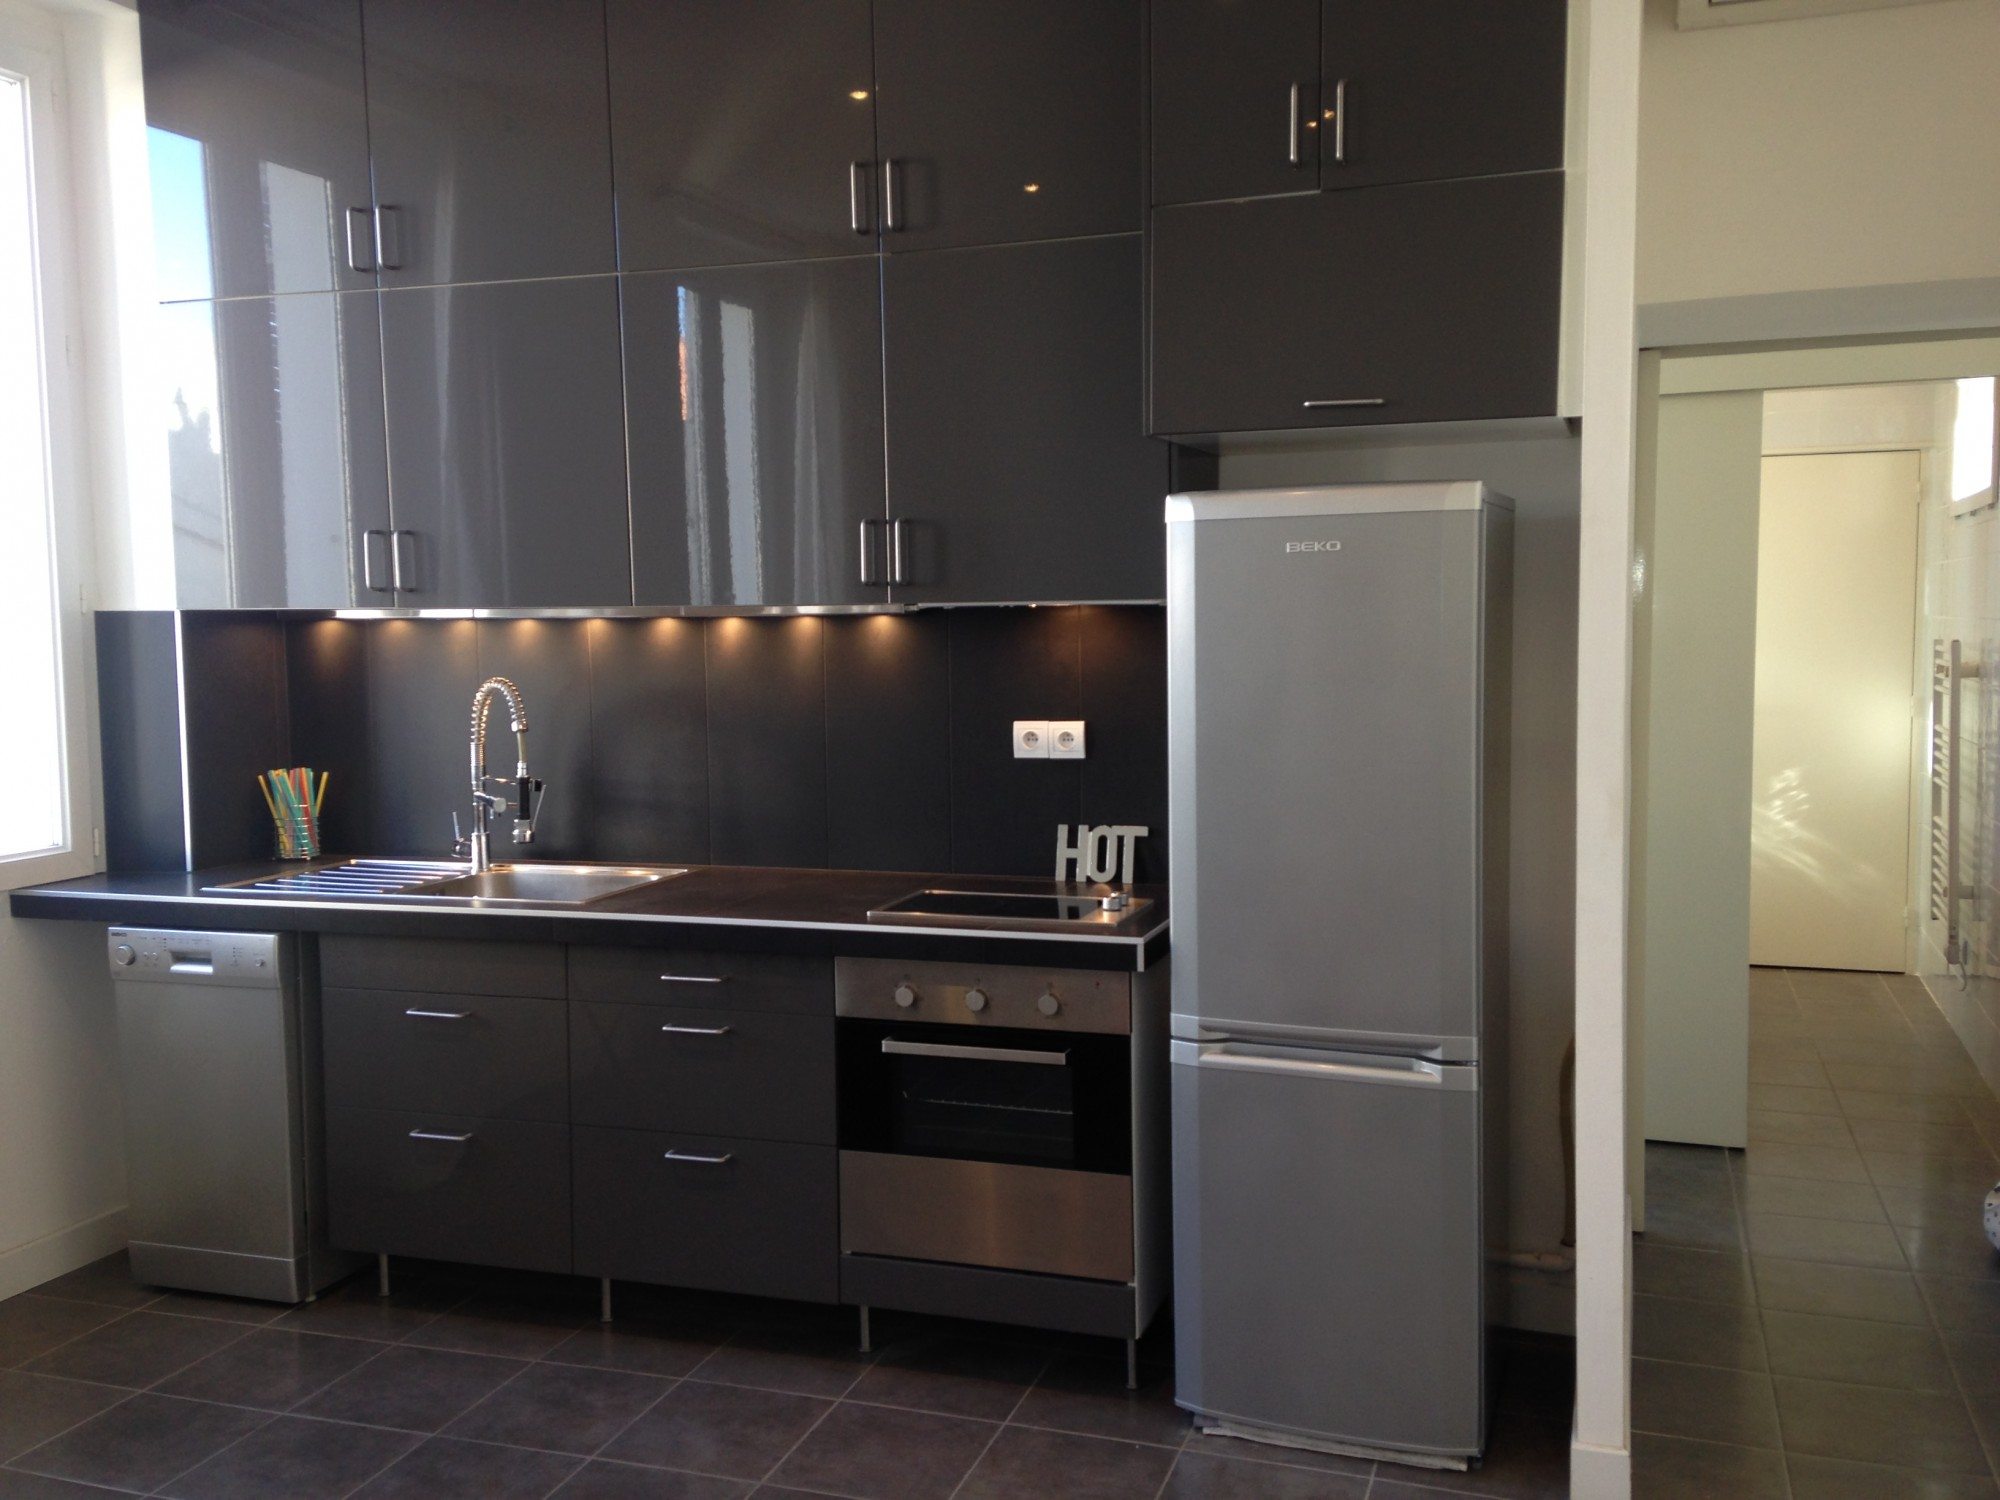 Locations appartement t2 f2 13007 quartier st victor for Petit cuisine equipee